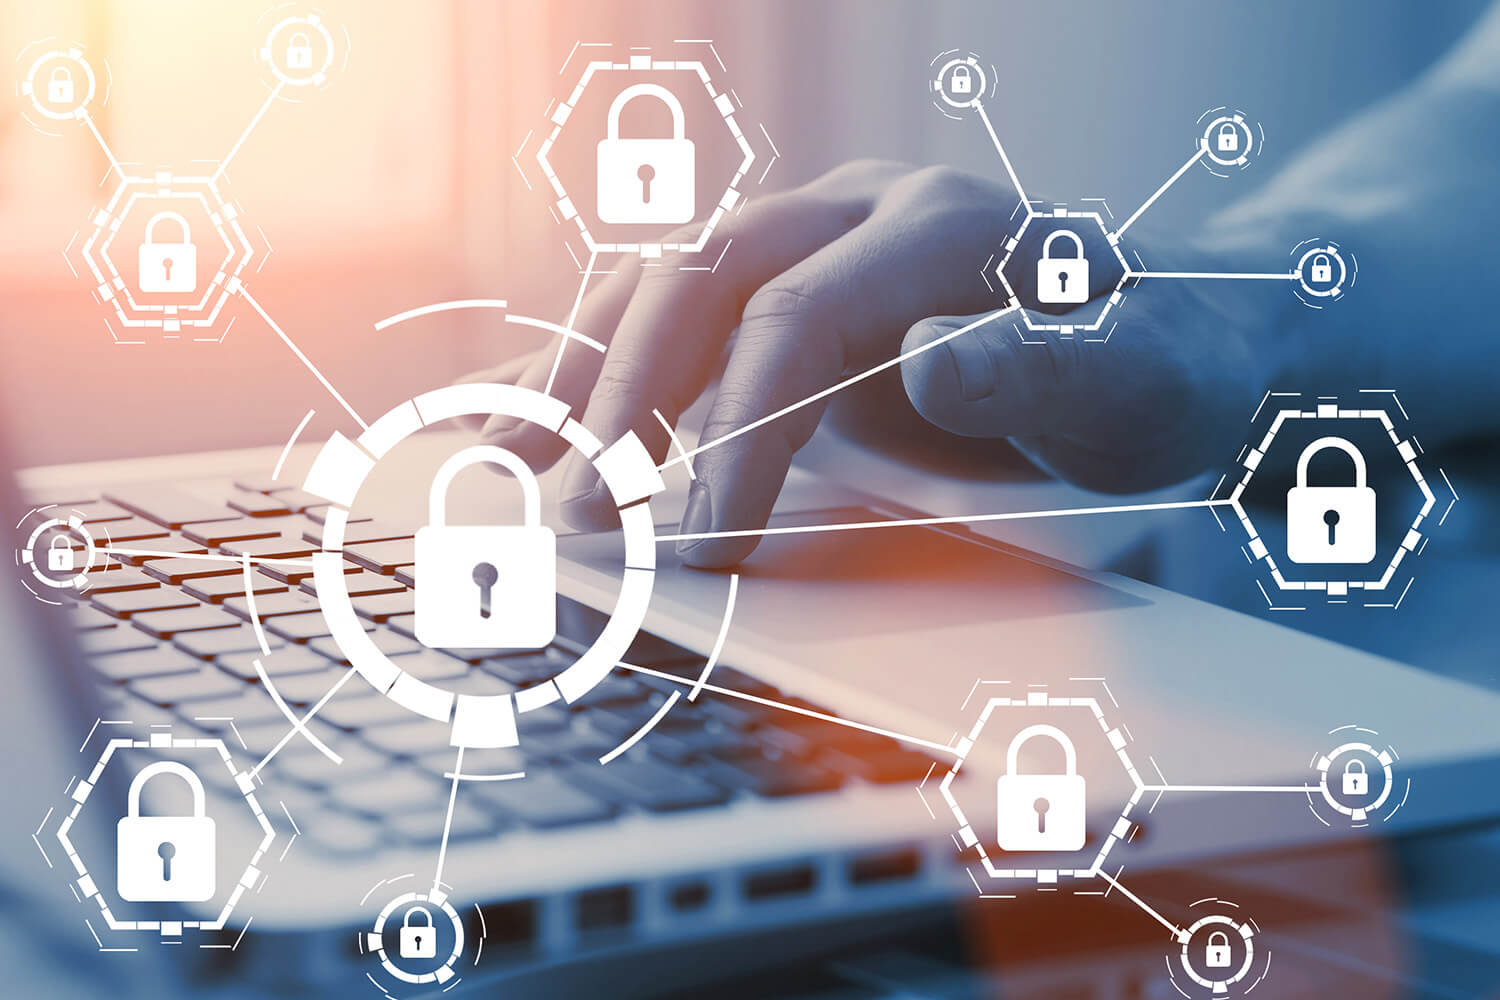 Three ways cybercriminals can target you and your business